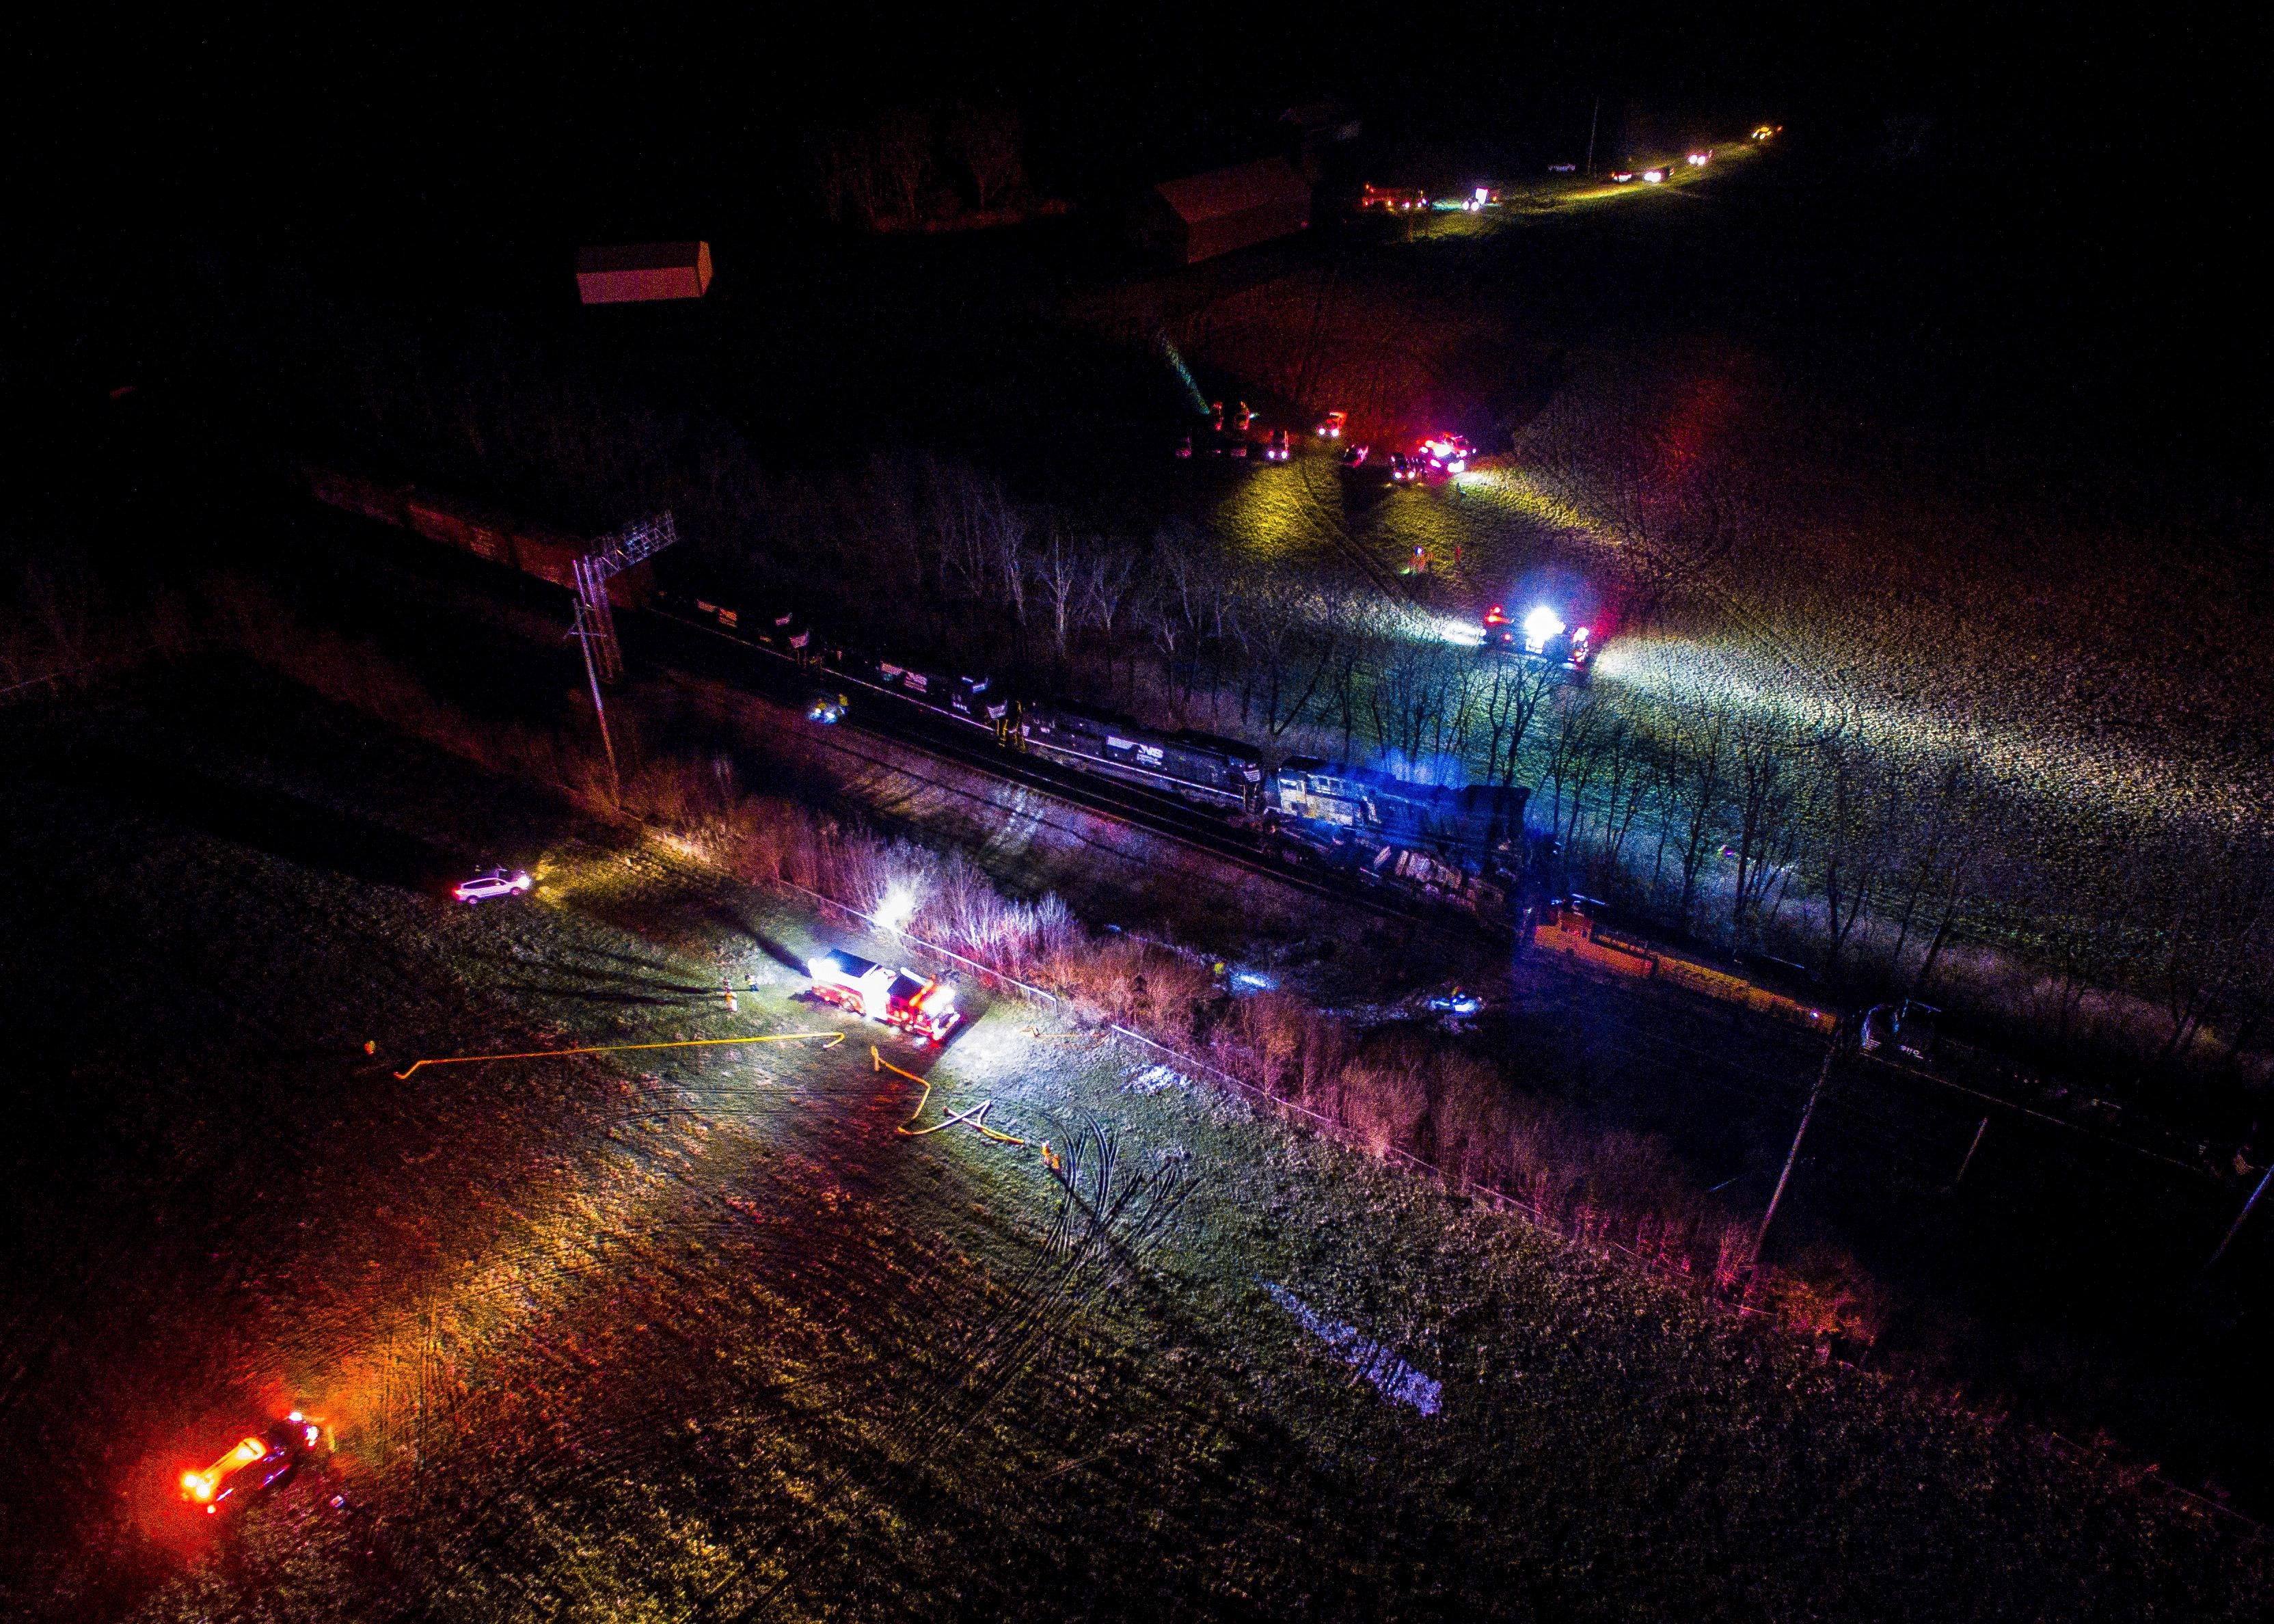 This photo provided by Nicholas Waun shows the scene where two trains collided and derailed in Georgetown, Ky., early Monday, March 19, 2018. Four people were injured after the accident late Sunday night. (Nicholas Waun via AP)